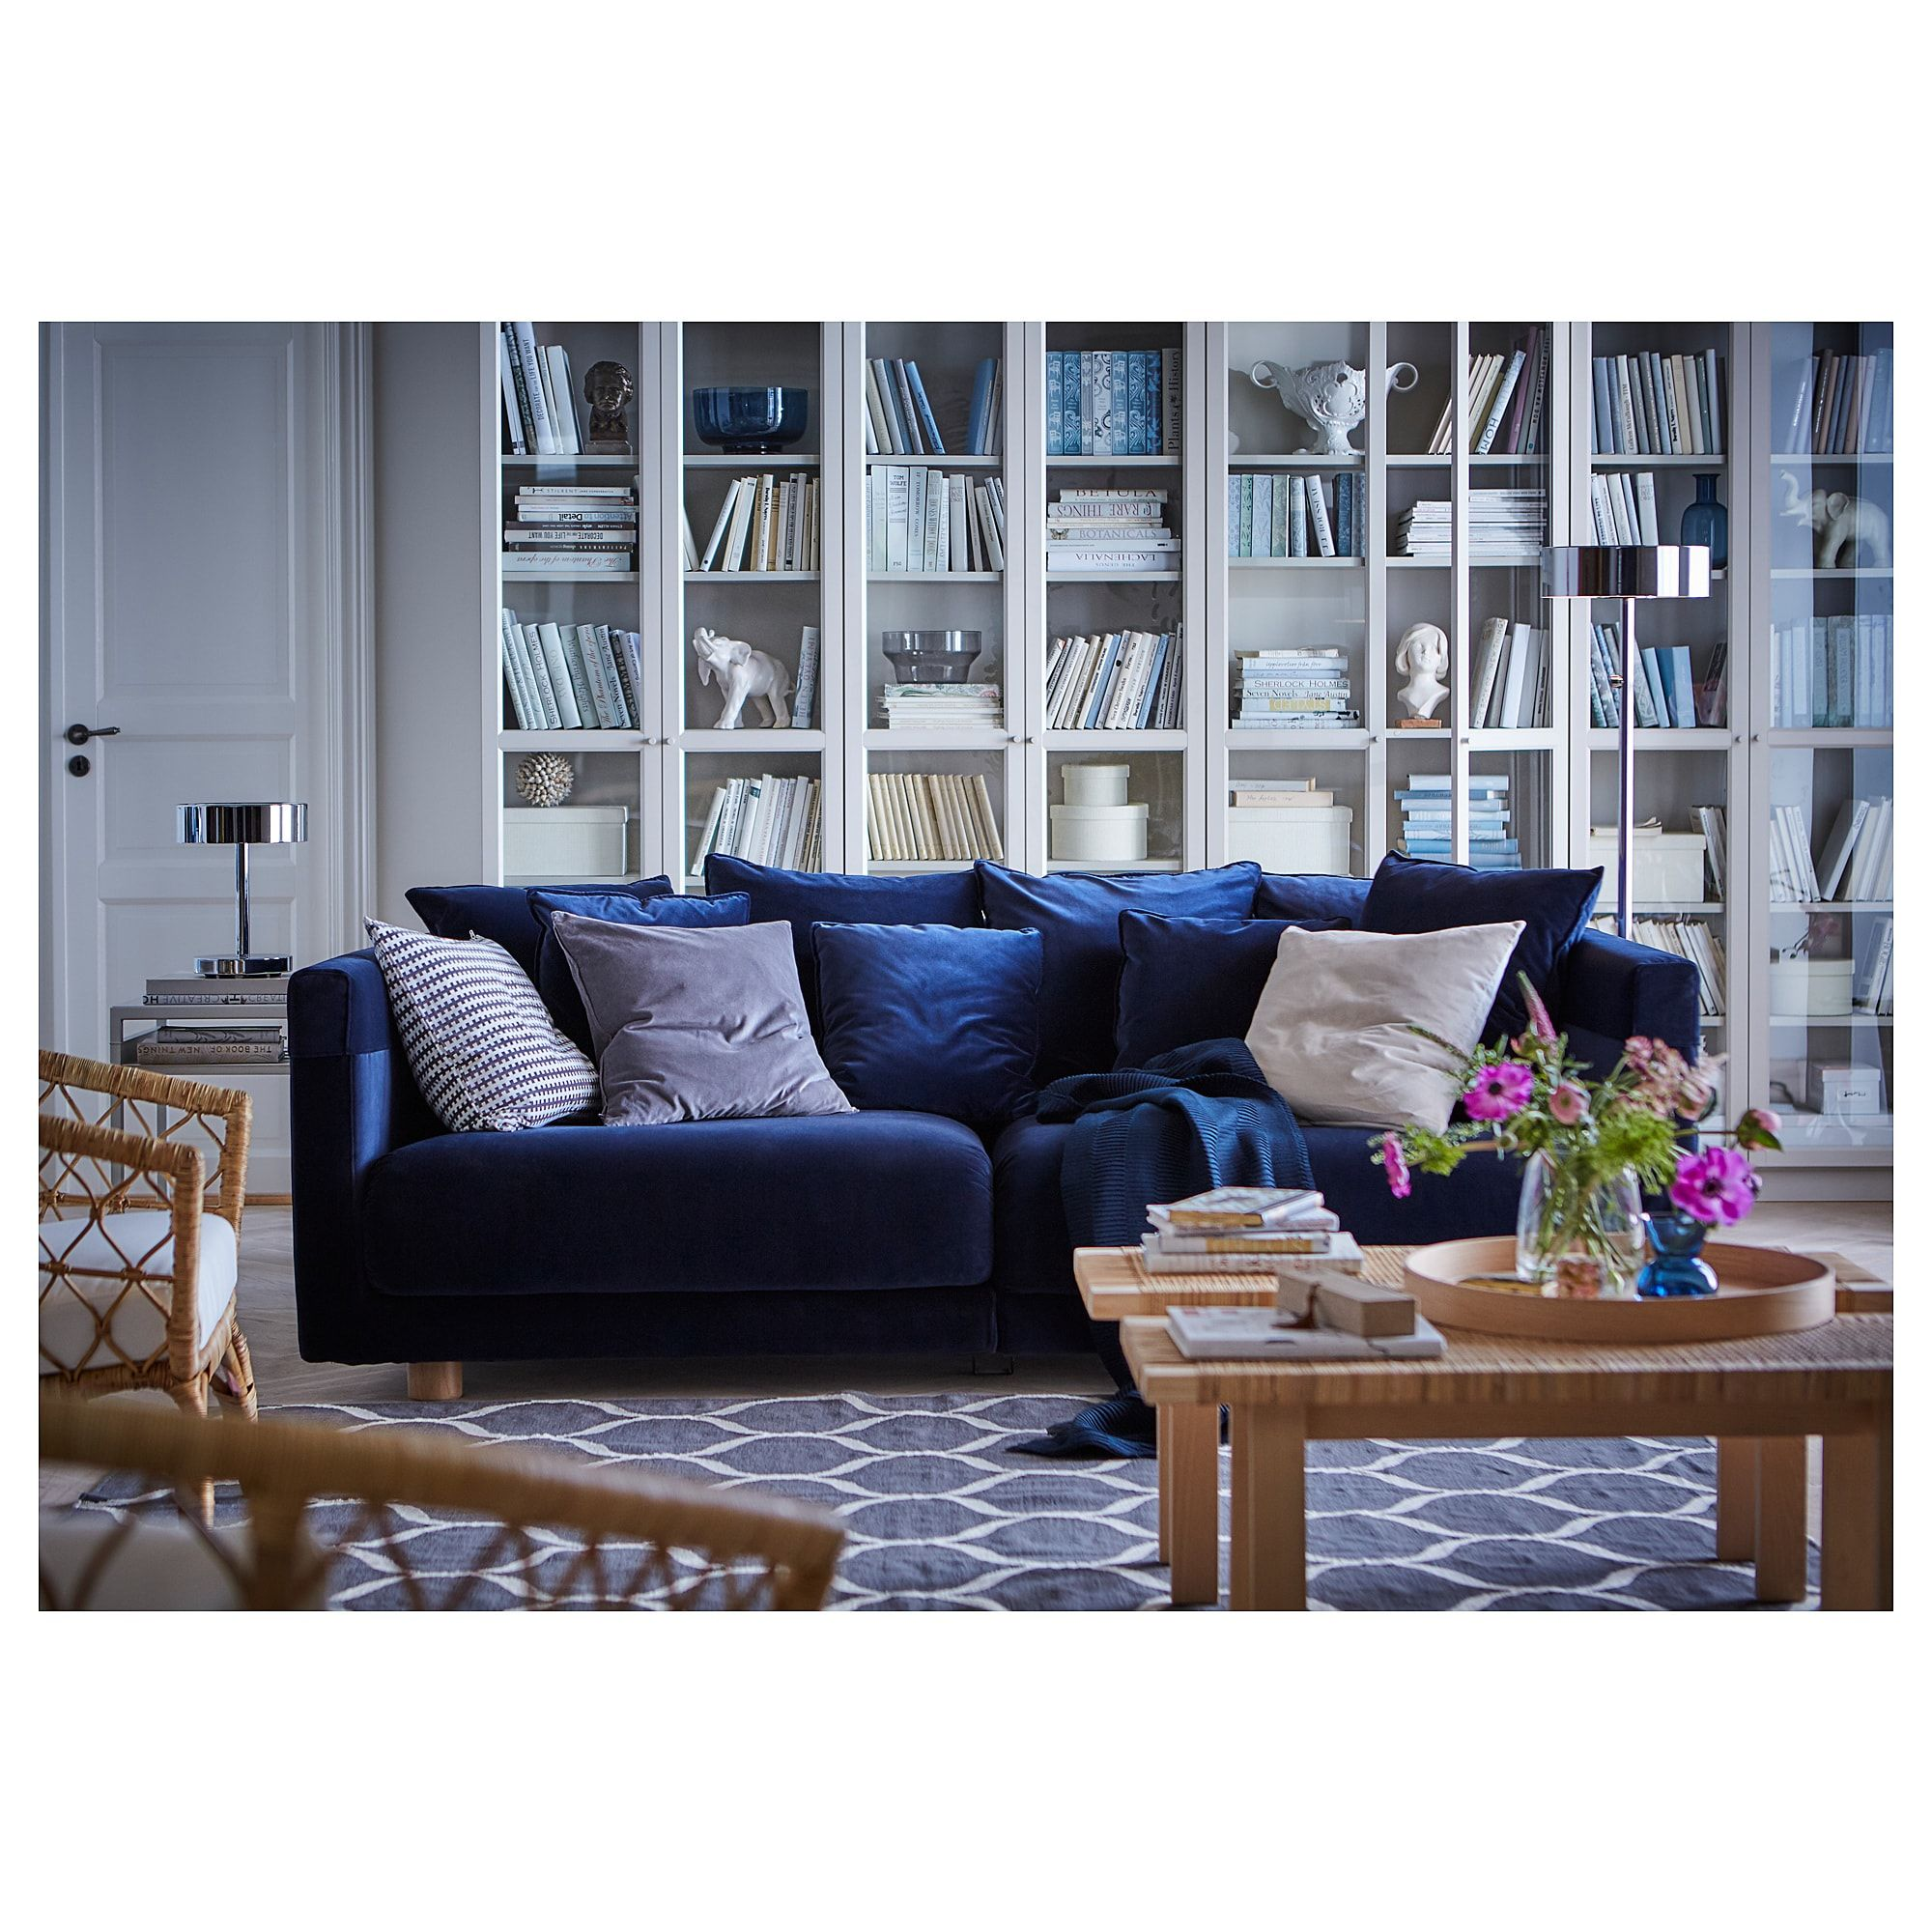 Stockholm 2017 Sofa Sandbacka Dark Blue Ikea Blue Sofas Living Room Blue Sofa Living Ikea Stockholm